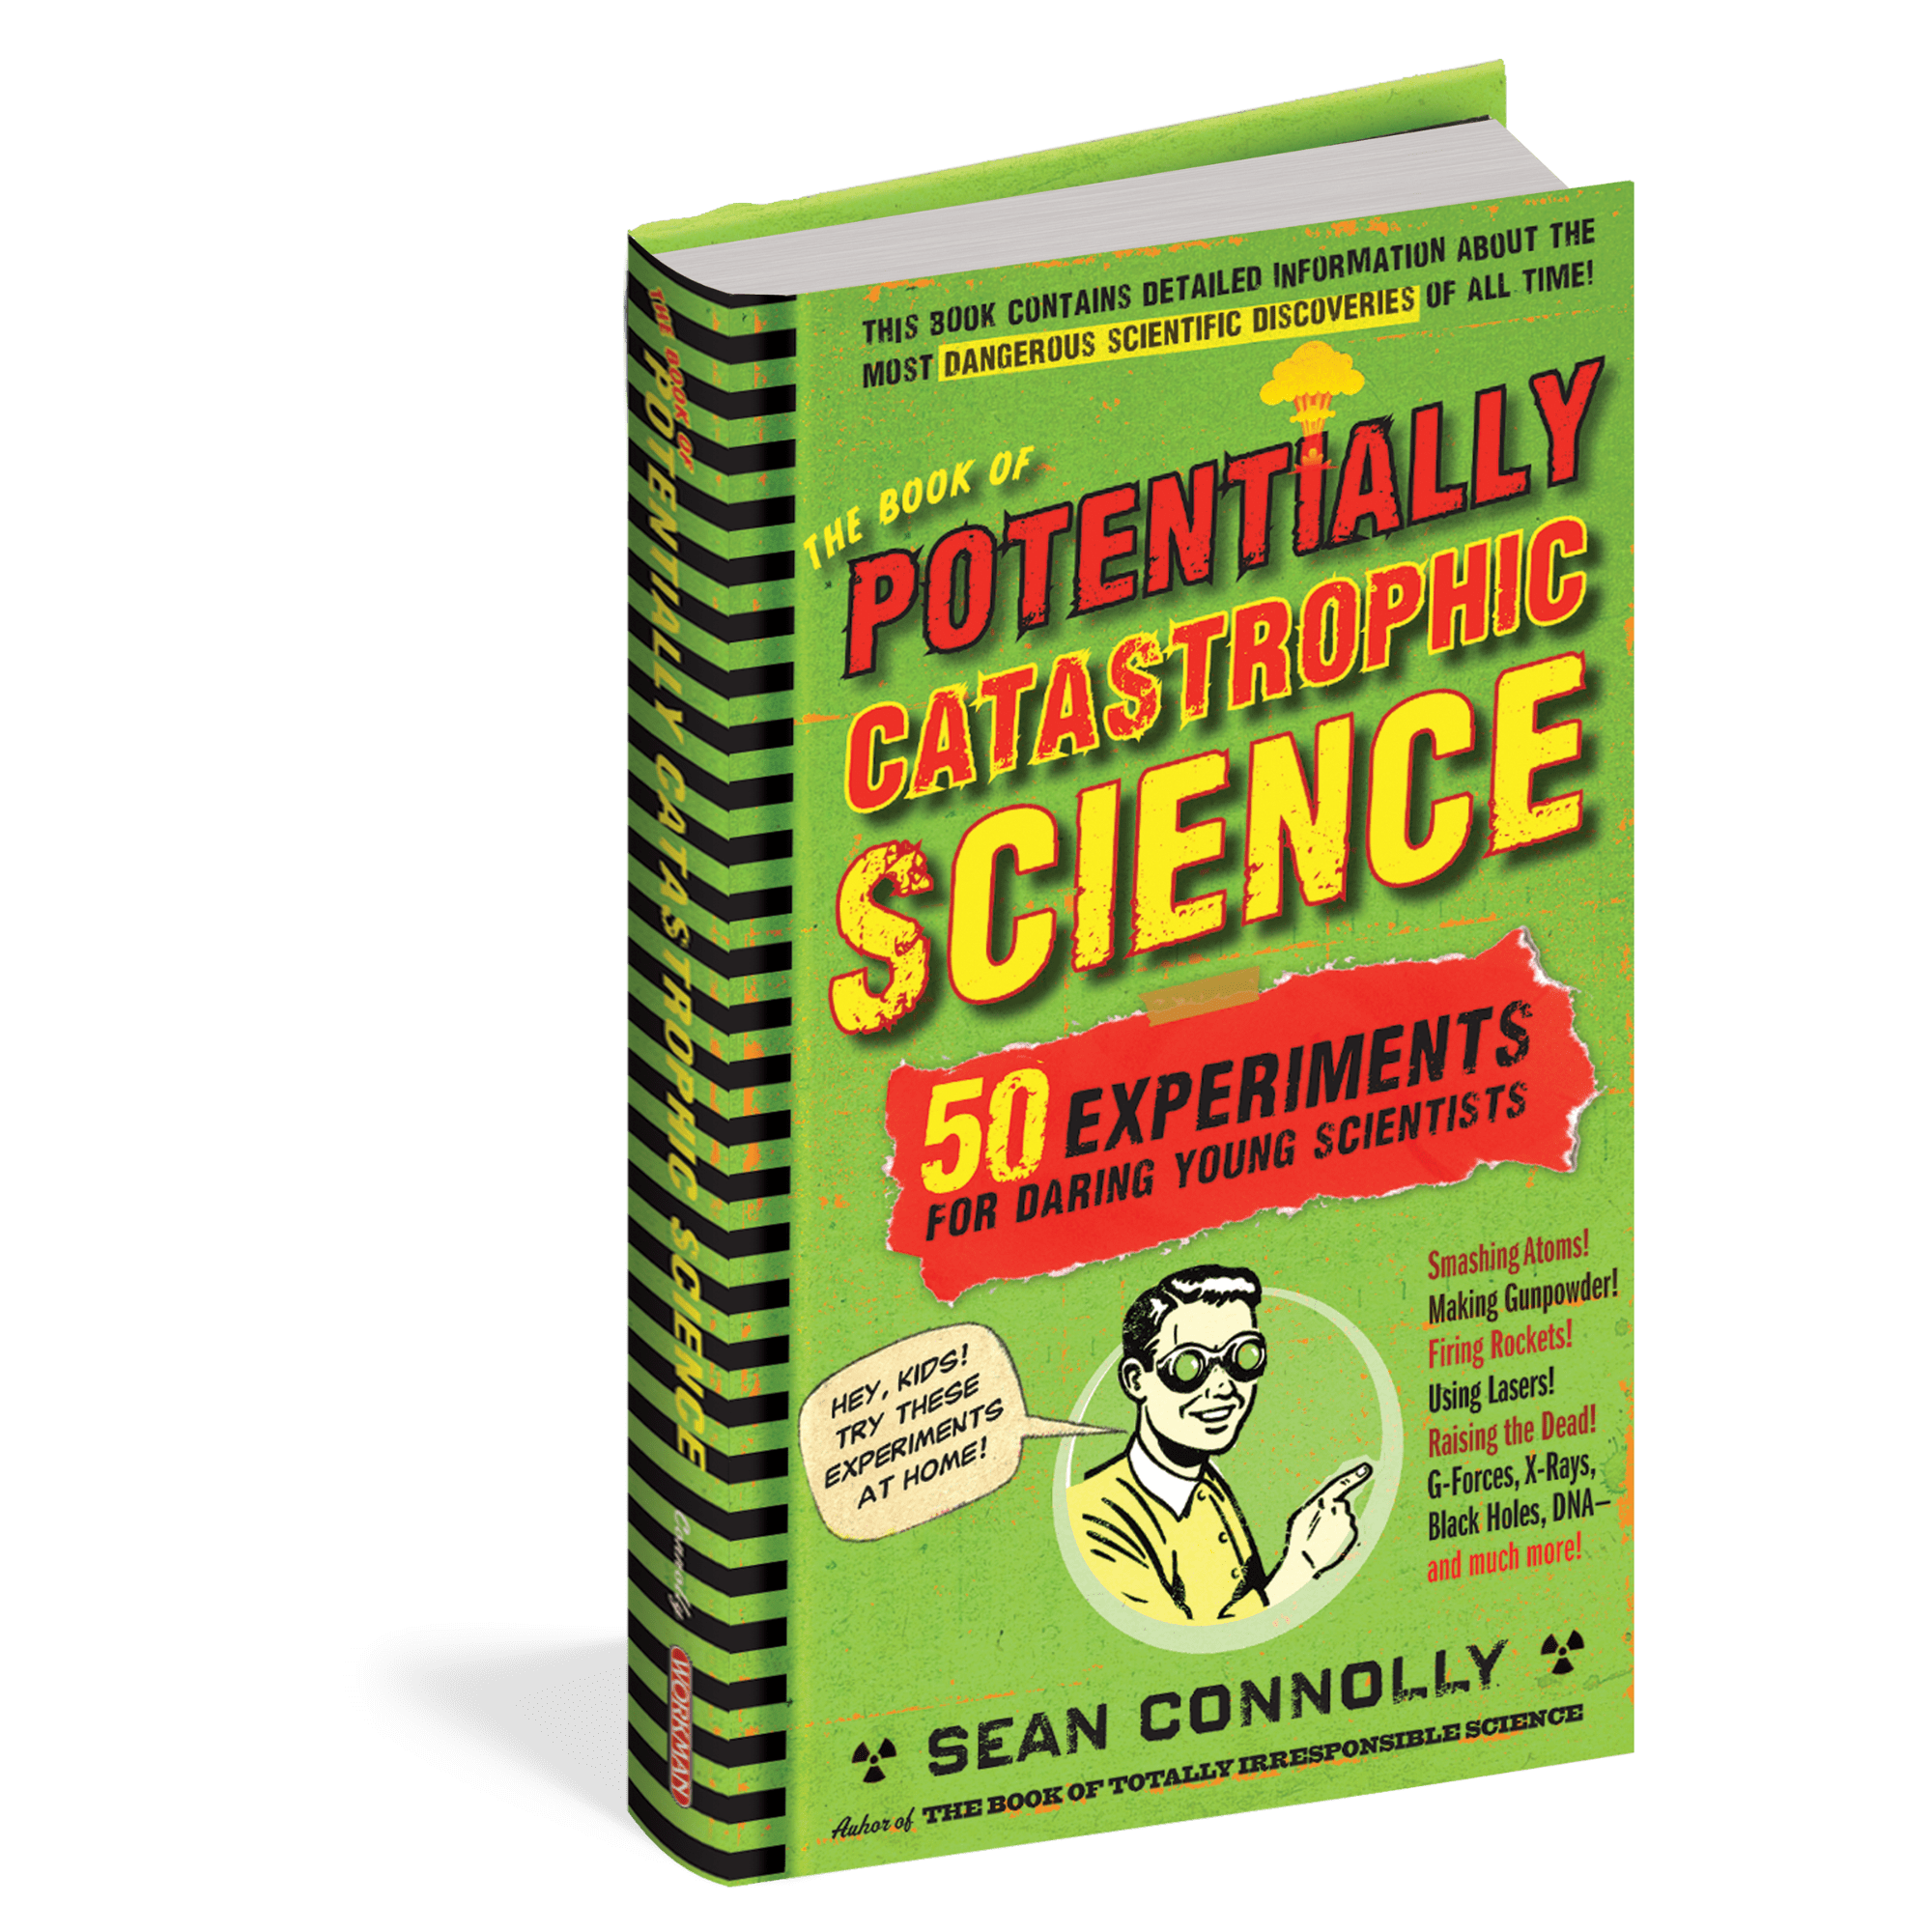 Potentially Catastrophic Science Experiments Workman Publishing Co. Books